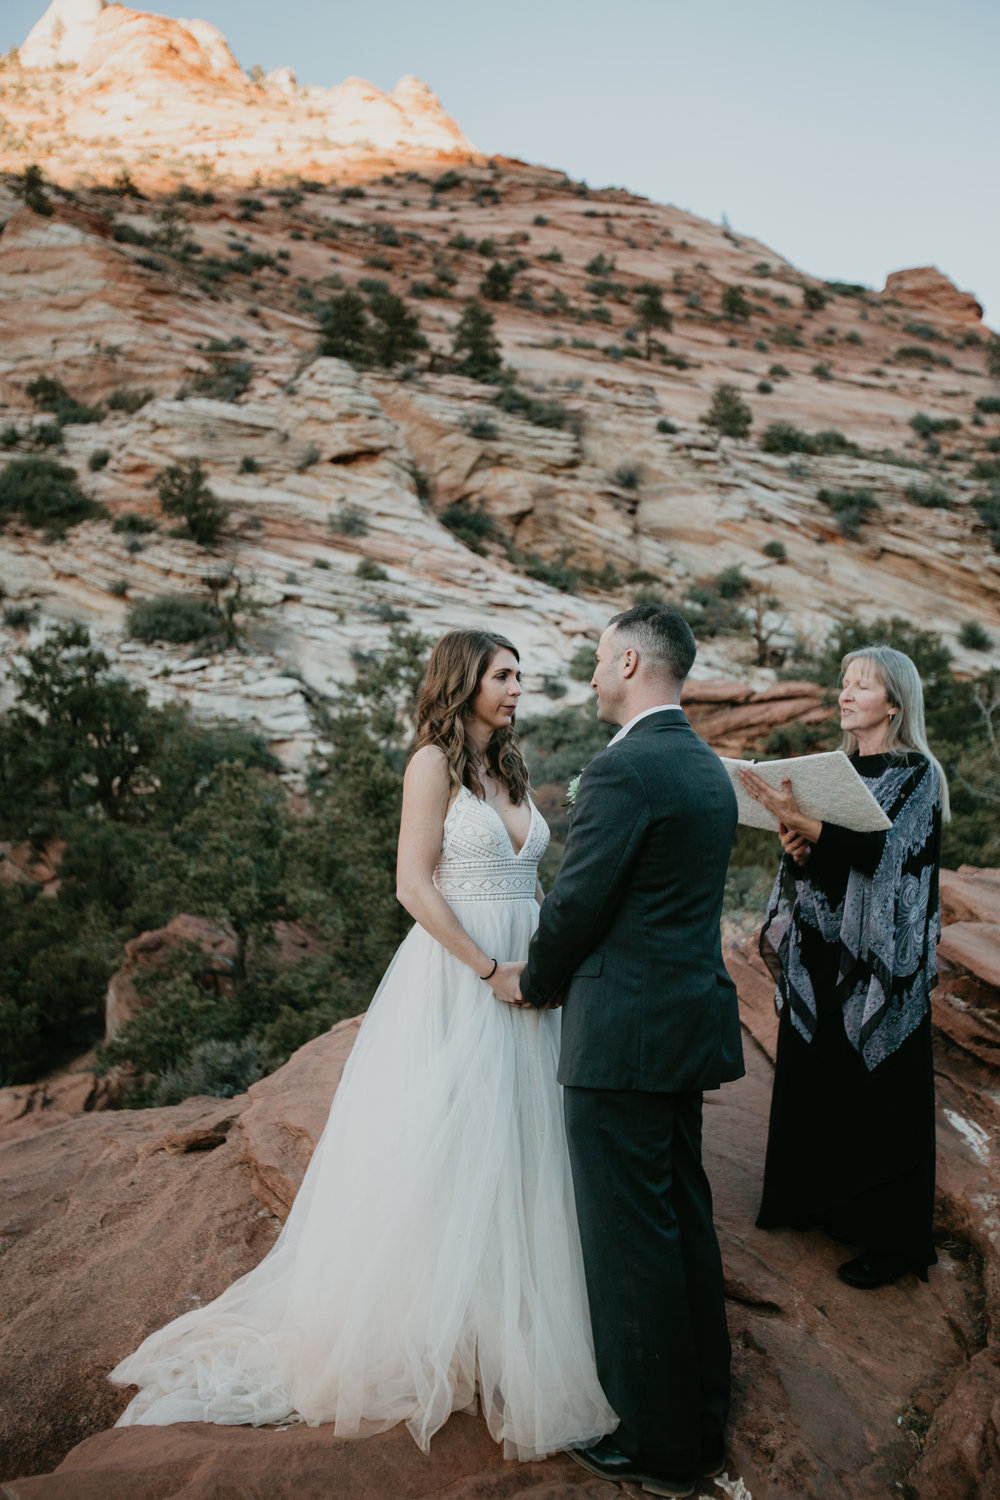 nicole-daacke-photography-zion-national-park-elopement-photographer-canyon-overlook-trail-elope-hiking-adventure-wedding-photos-fall-utah-red-rock-canyon-stgeorge-eloping-photographer-51.jpg